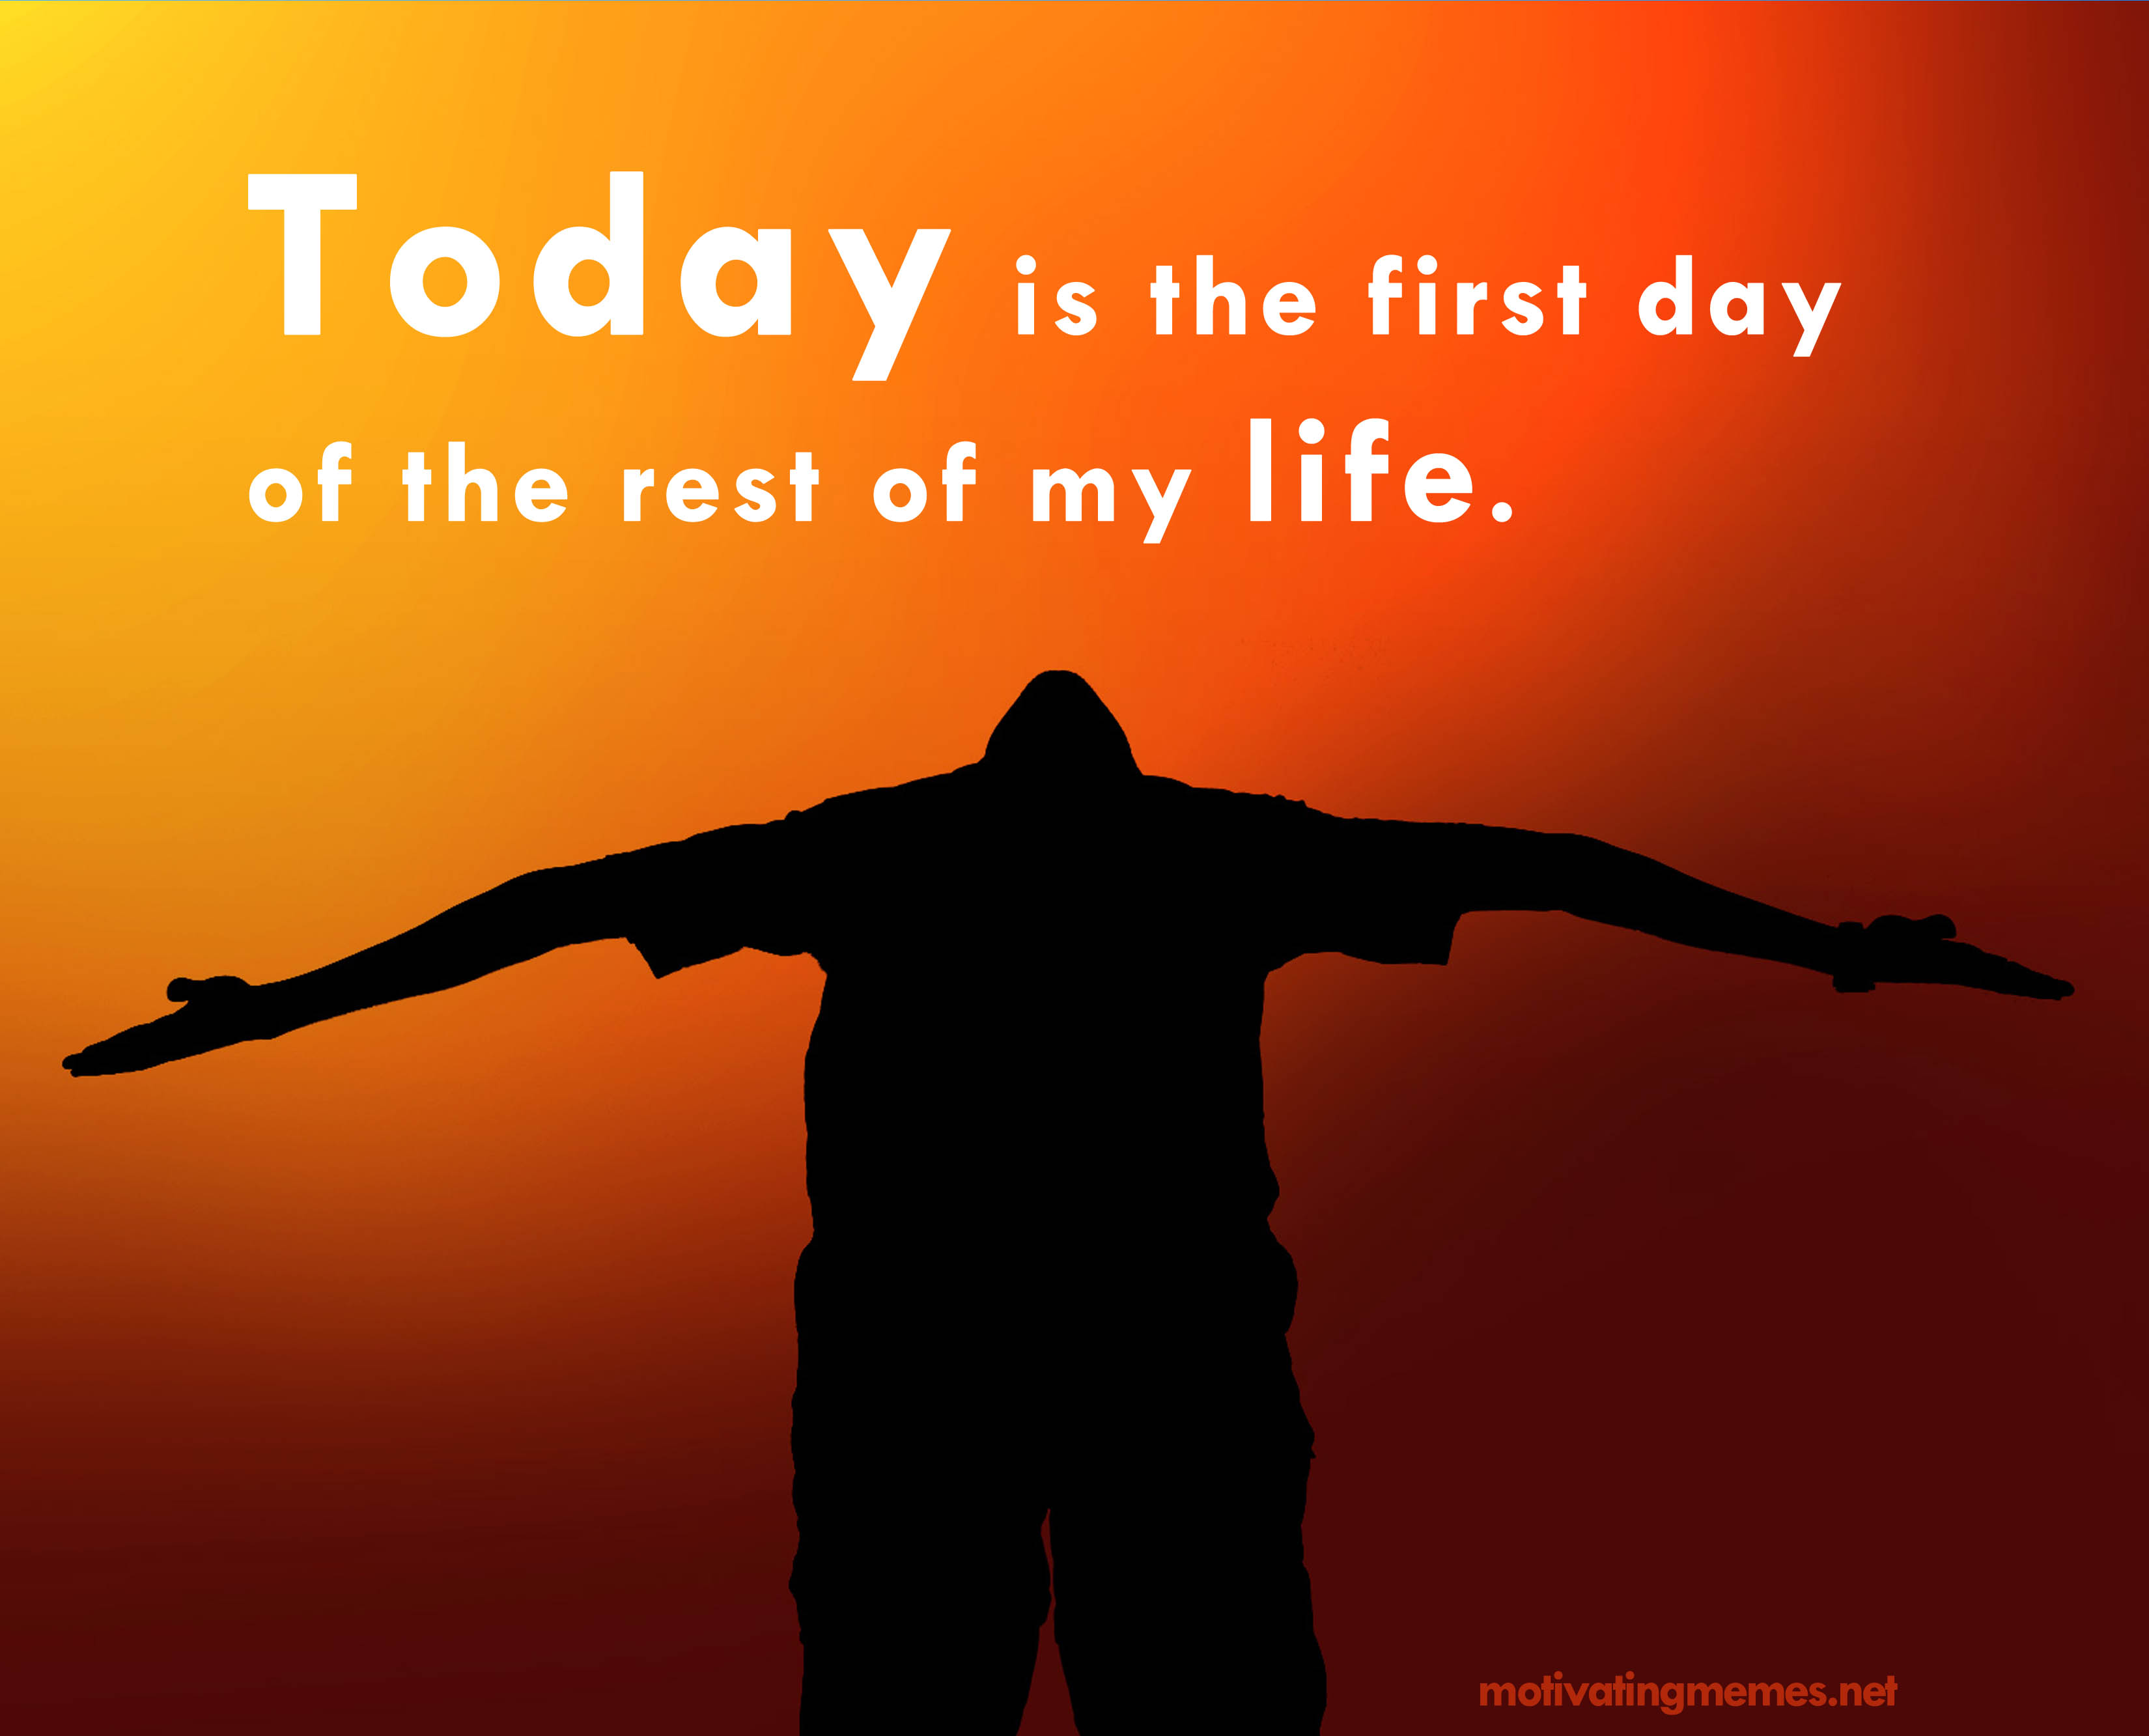 Today is the first day of the rest of my life